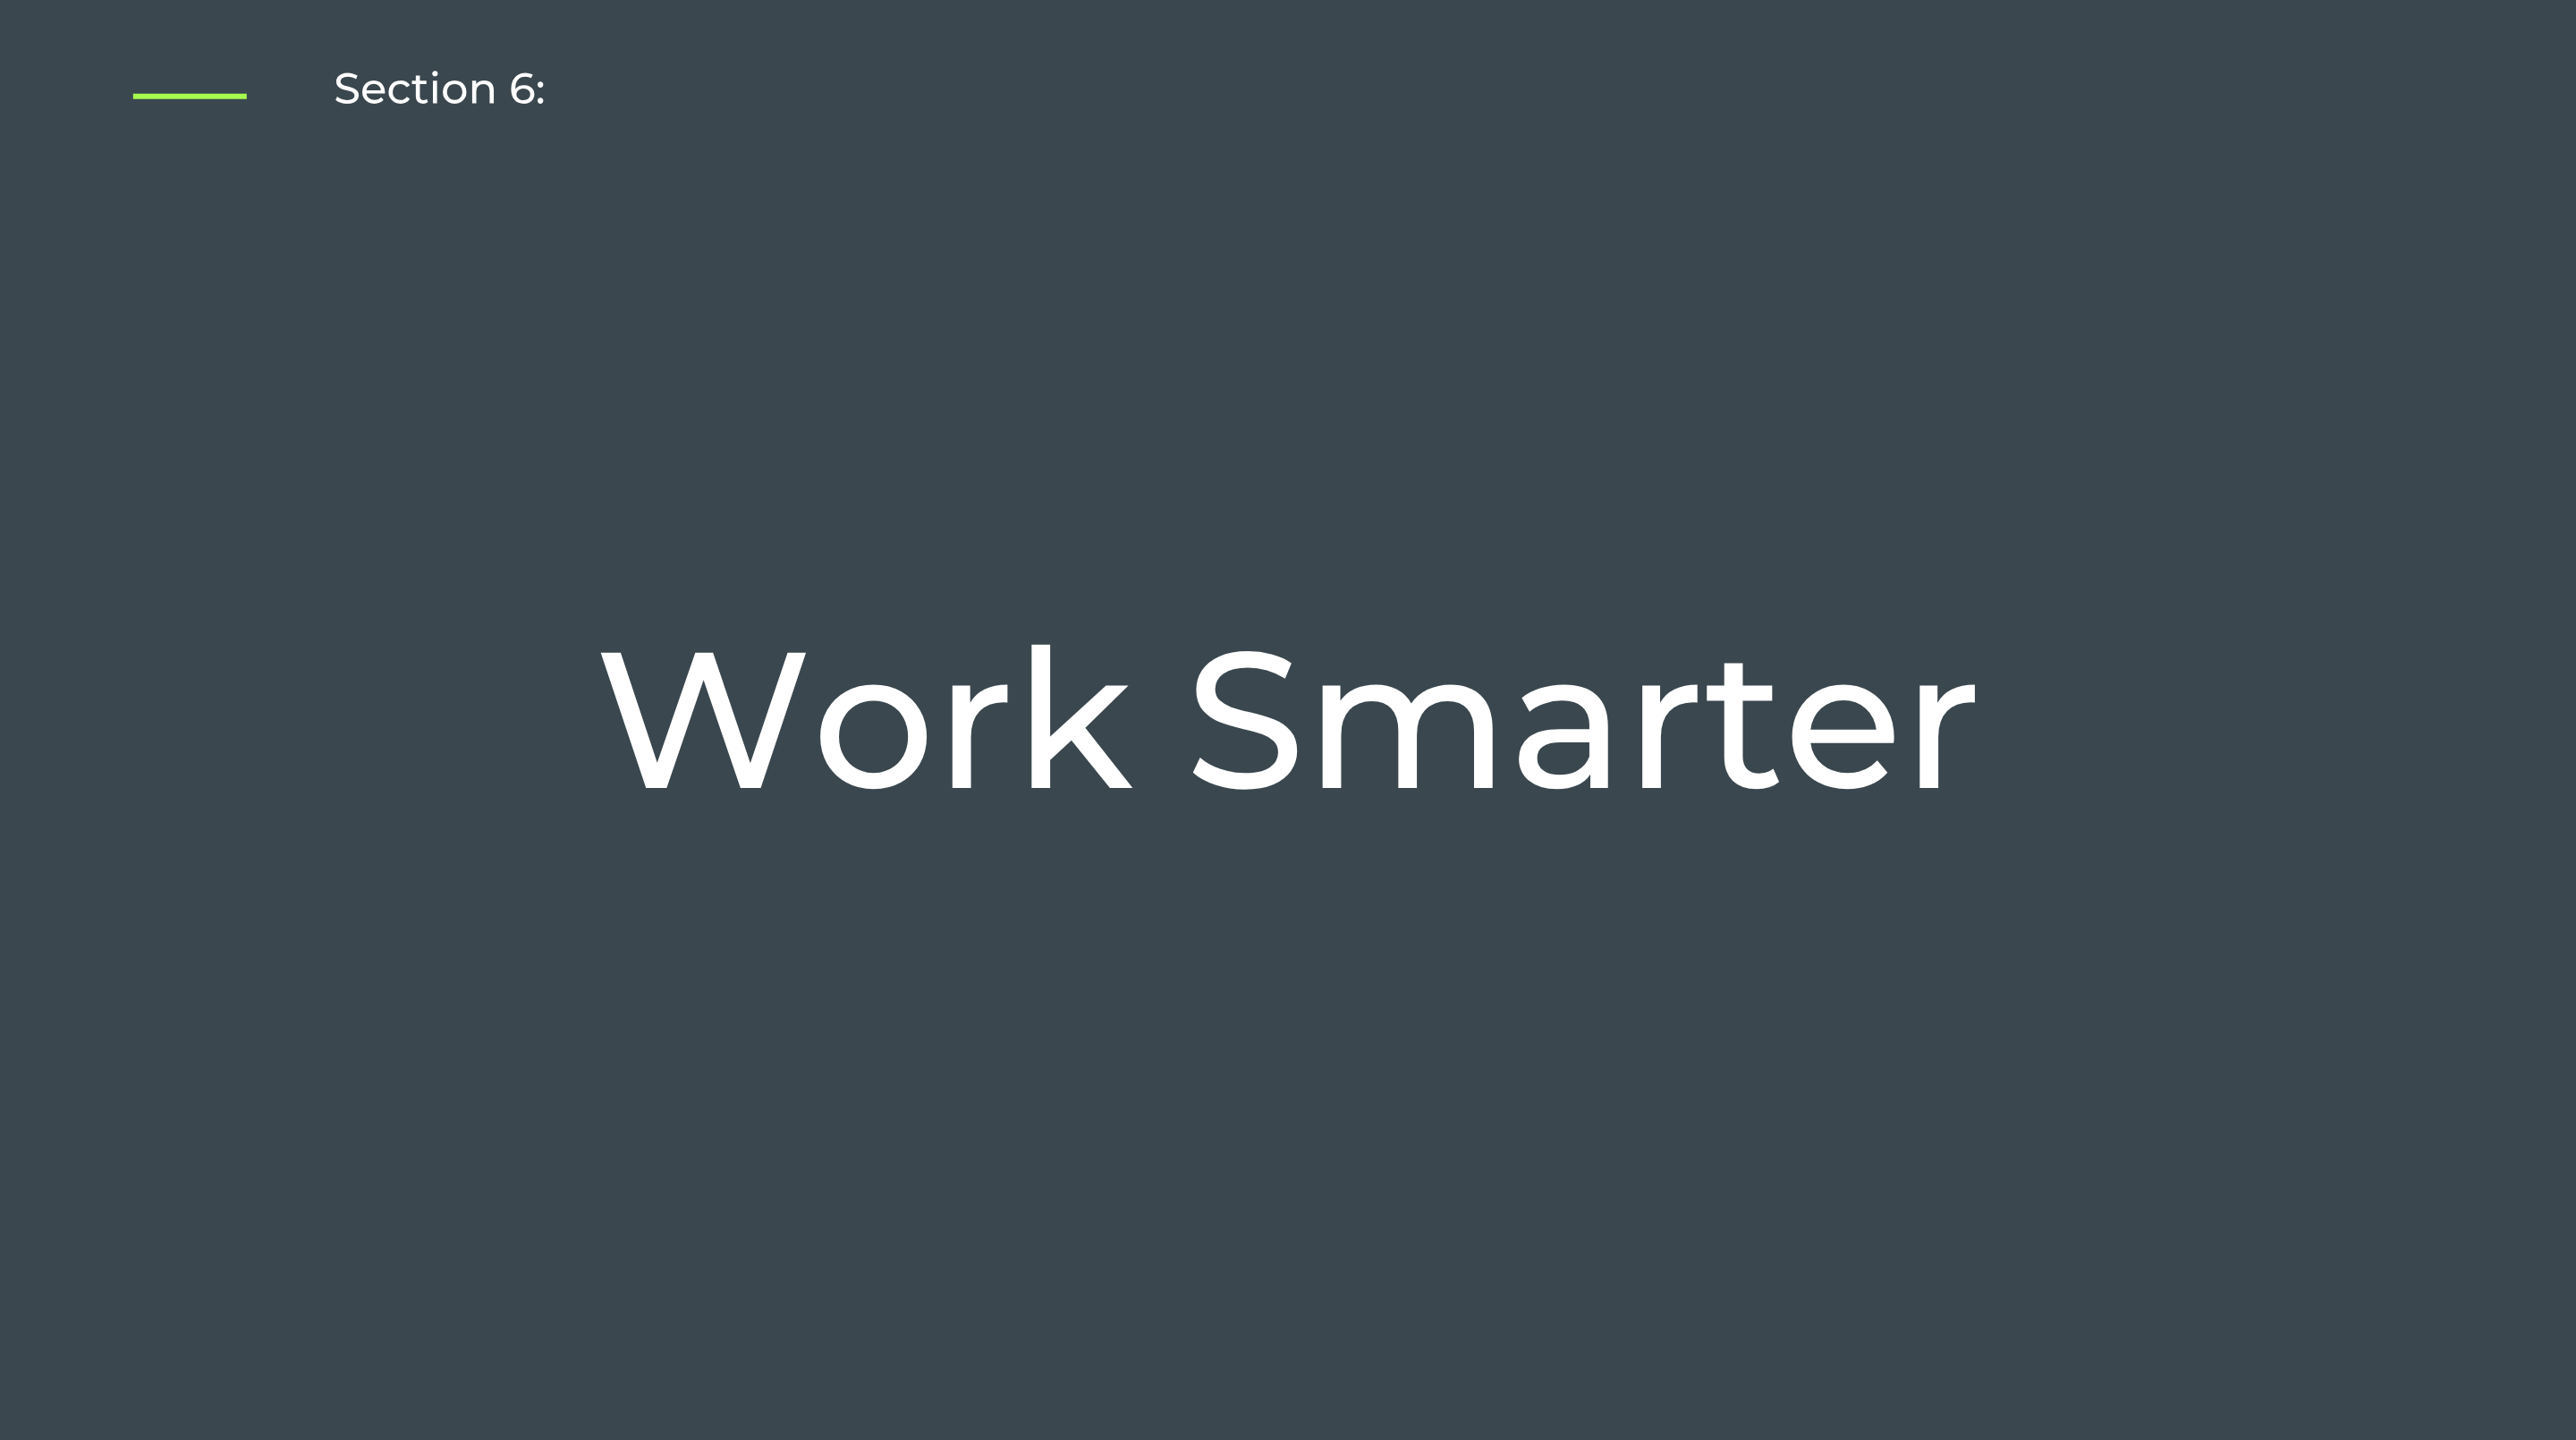 Section 6: Work Smarter - Self-Paced Onboarding for Admins